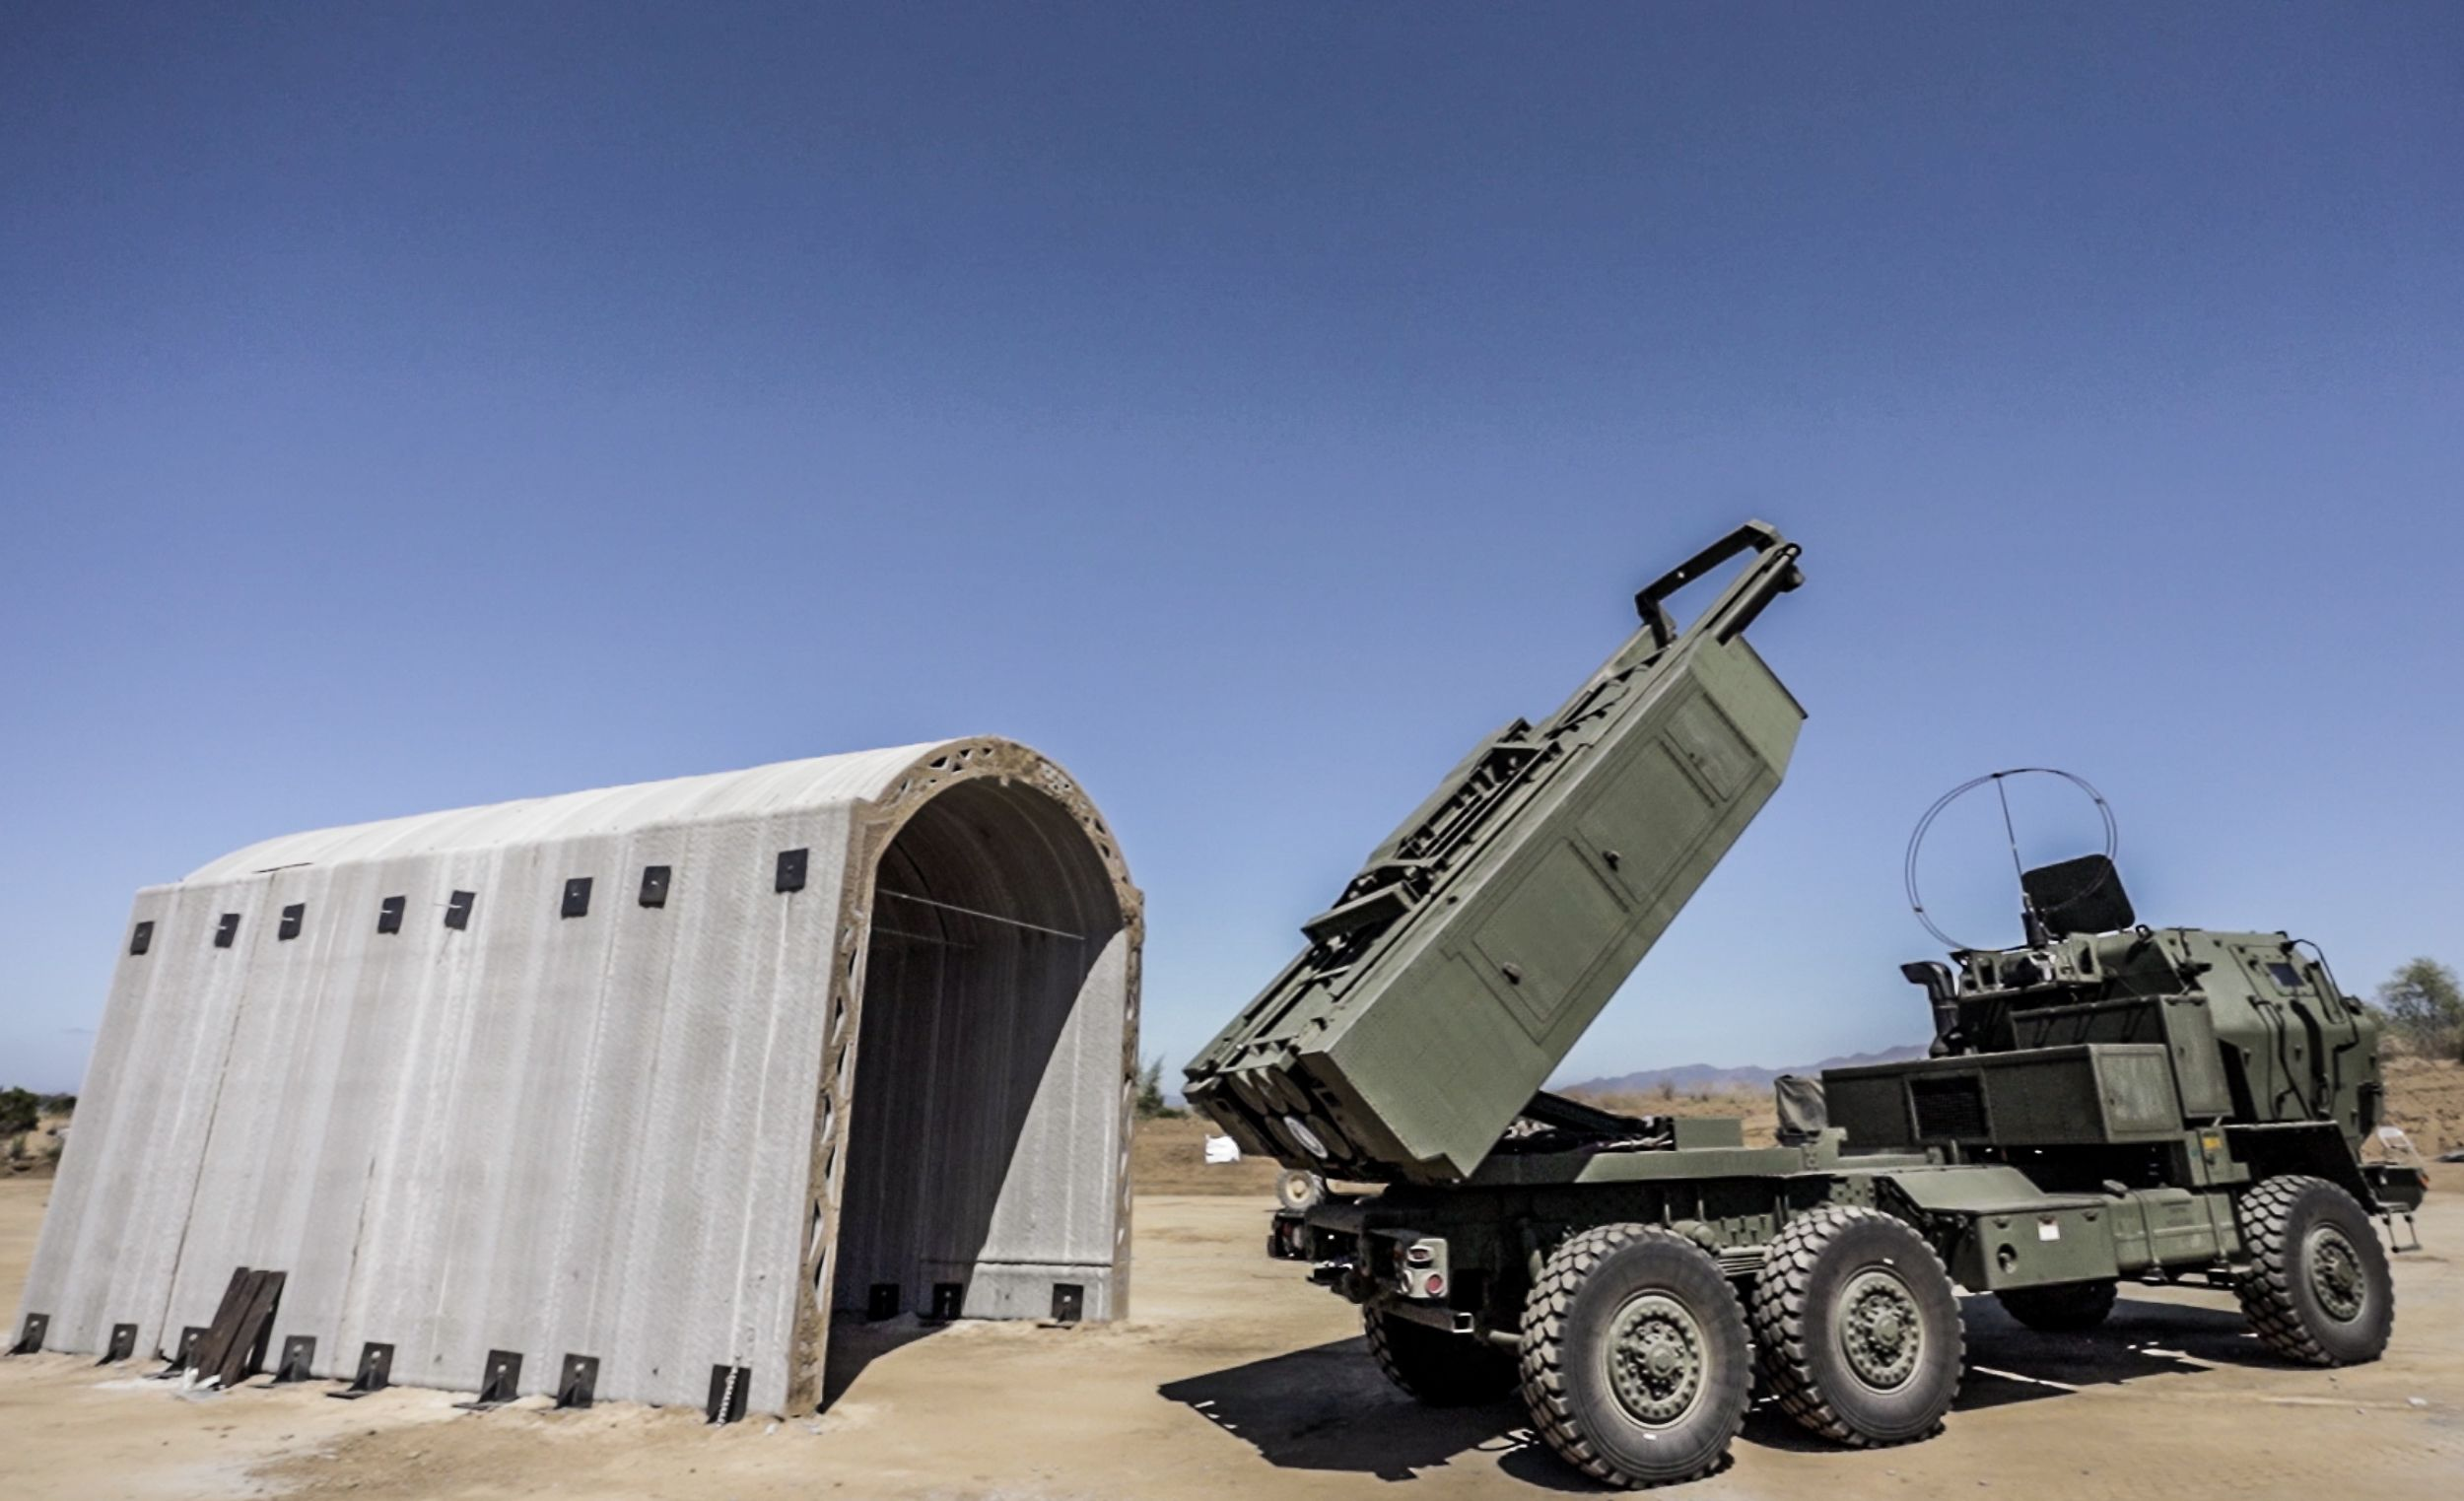 The Marines 3D-Printed a Rocket Launcher Shelter in 36 Hours